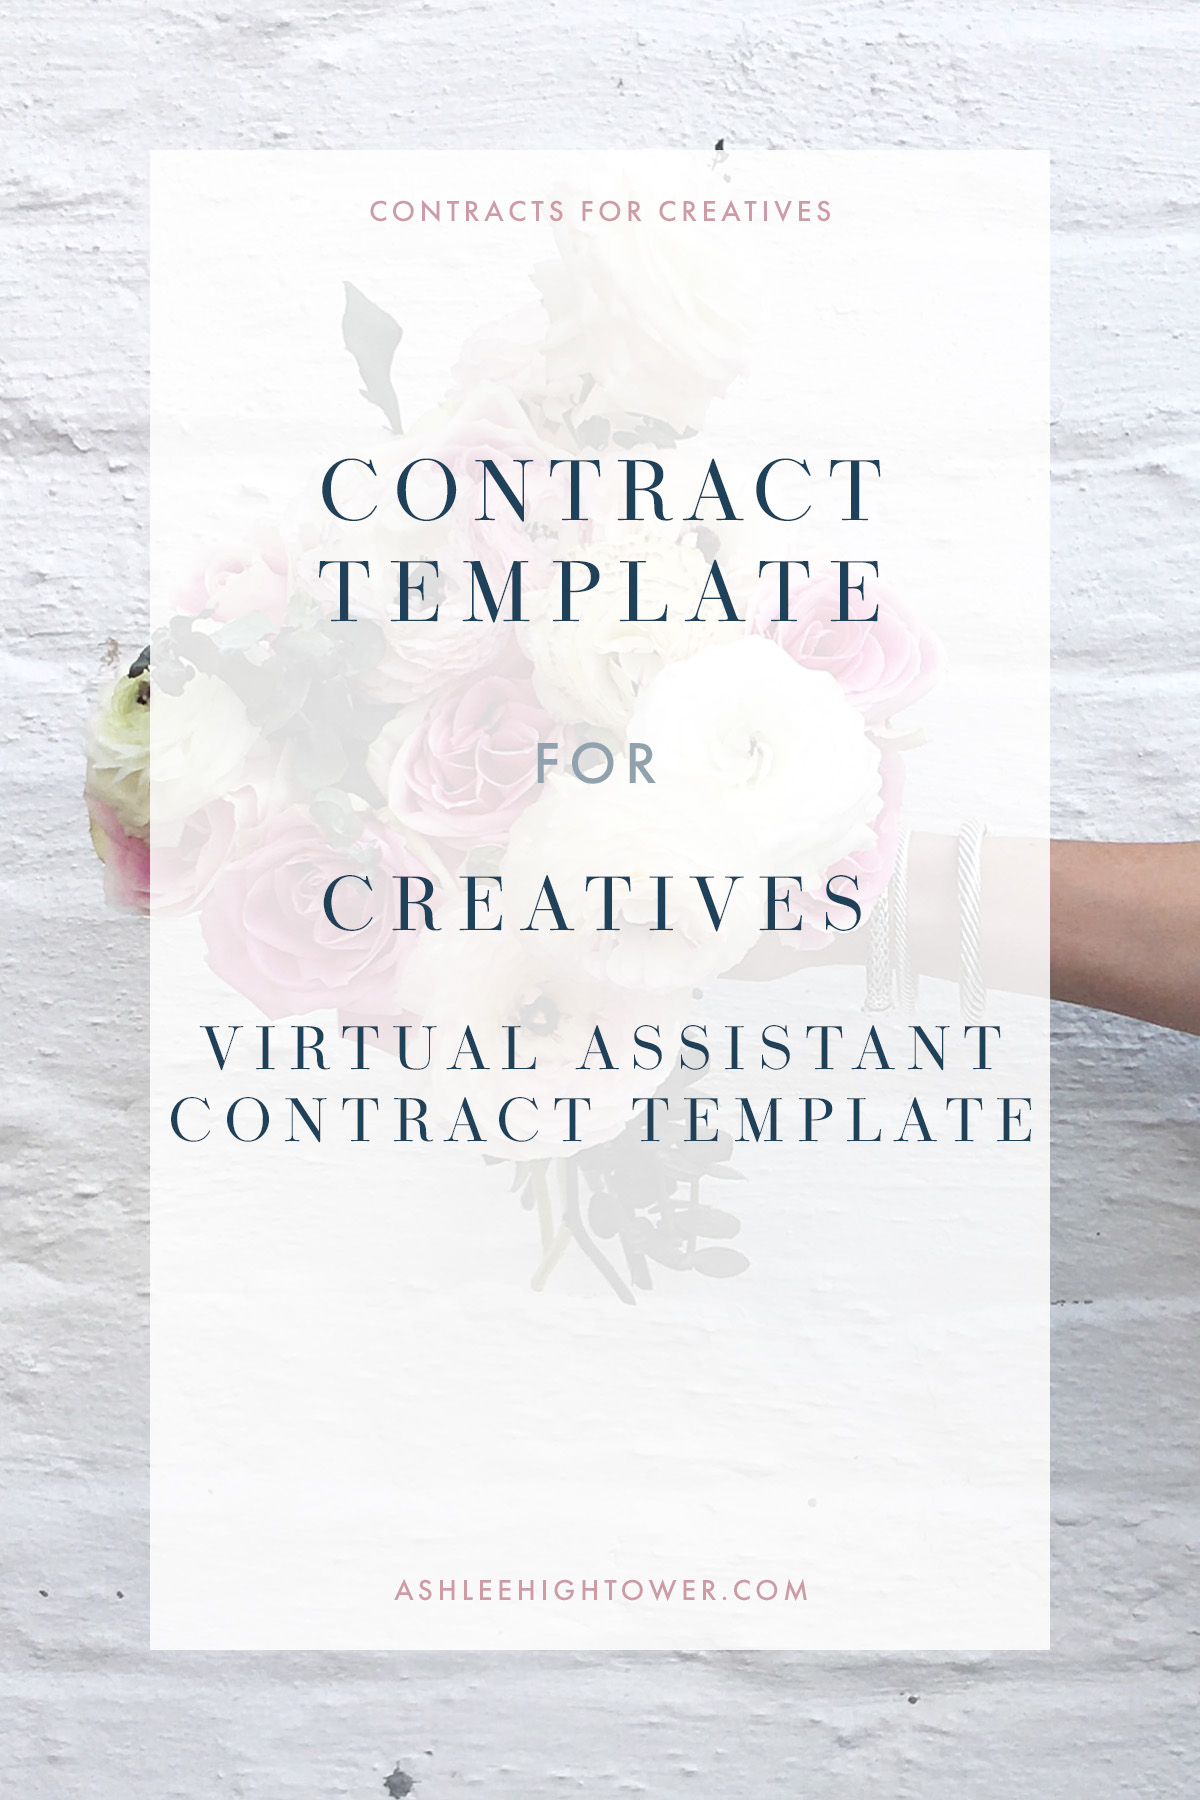 Contracts for Creatives | Virtual Assistant Contract Template | Ashlee Hightower